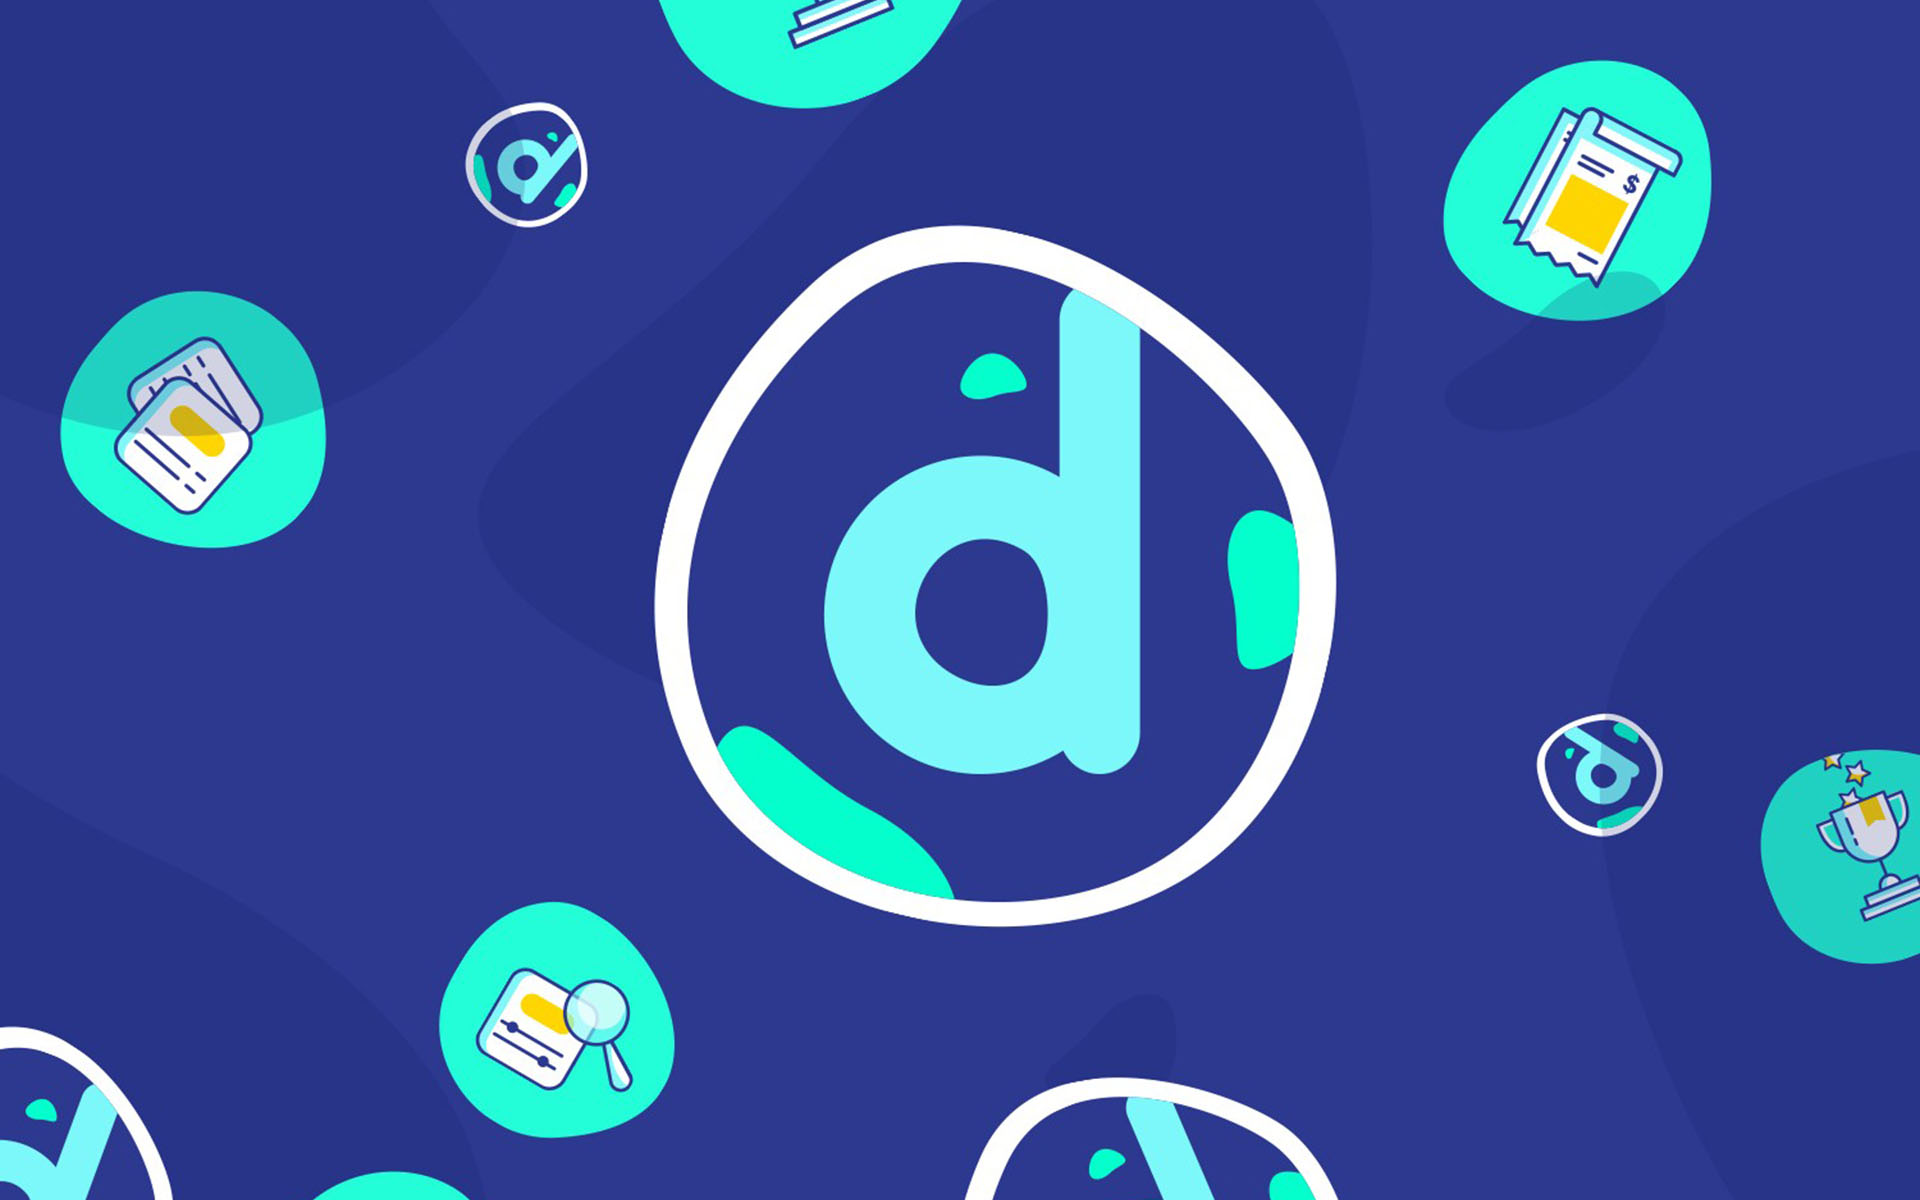 District0x: A Network for Decentralized Marketplaces and Communities